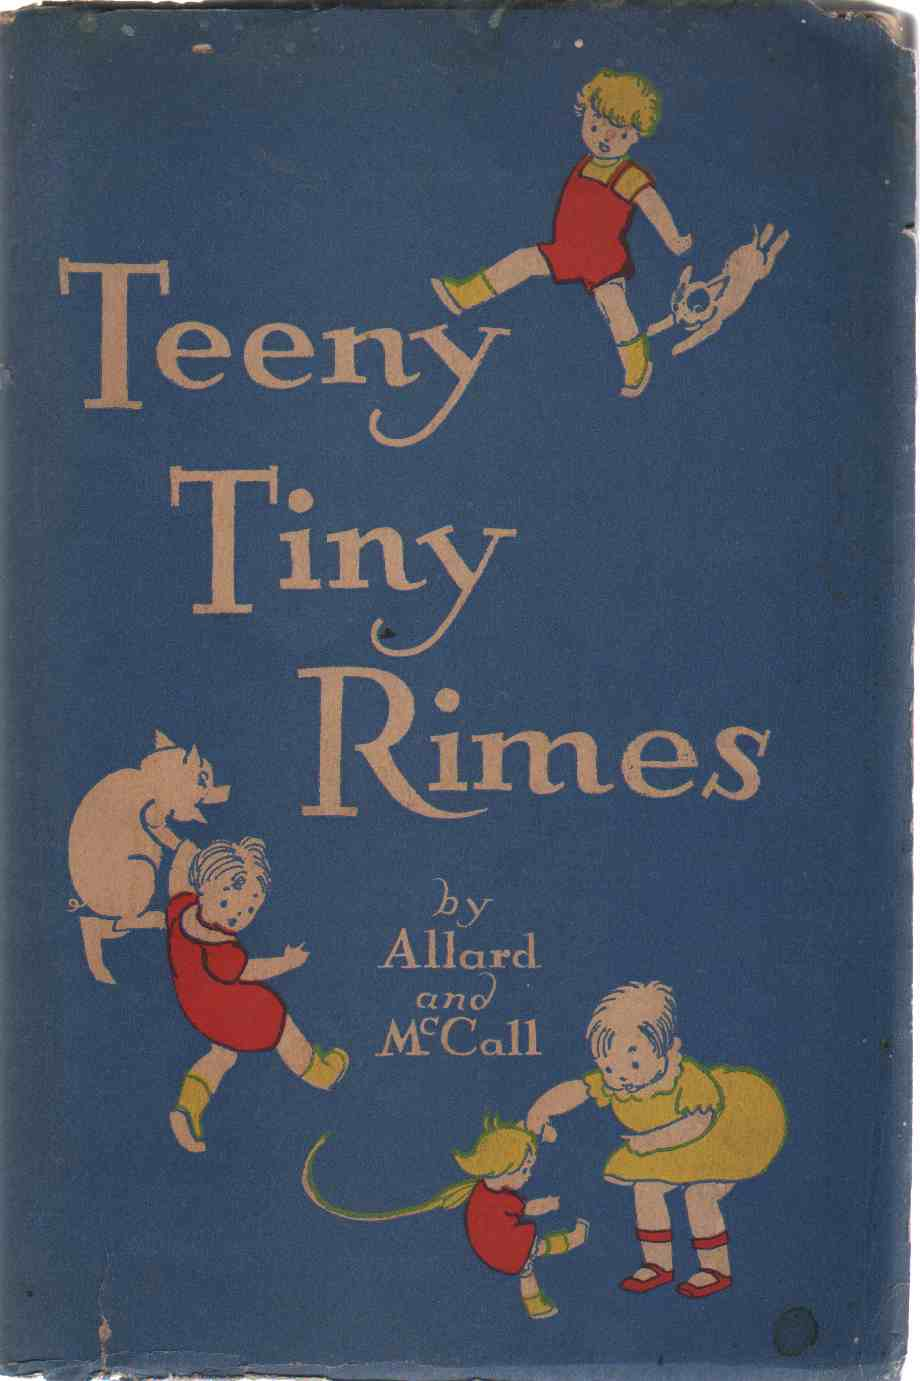 TEENY TINY RIMES With How to Use Teeny Tiny Rimes in Teaching Reading, Allard, Lucile and William McCall